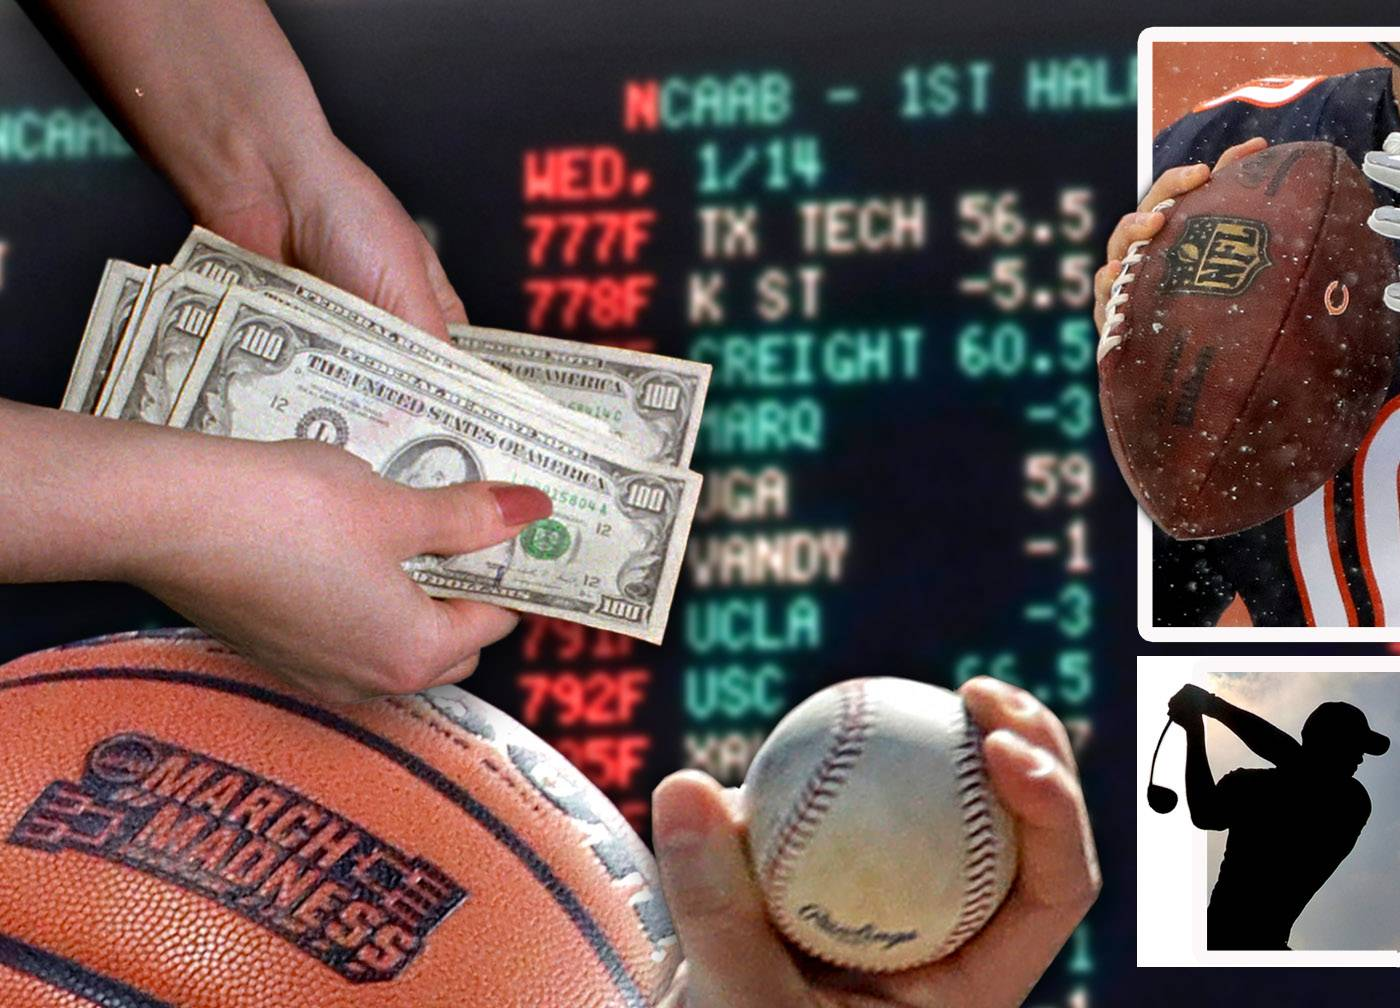 Legal sports betting is being discussed as an option in the state of Illinois.